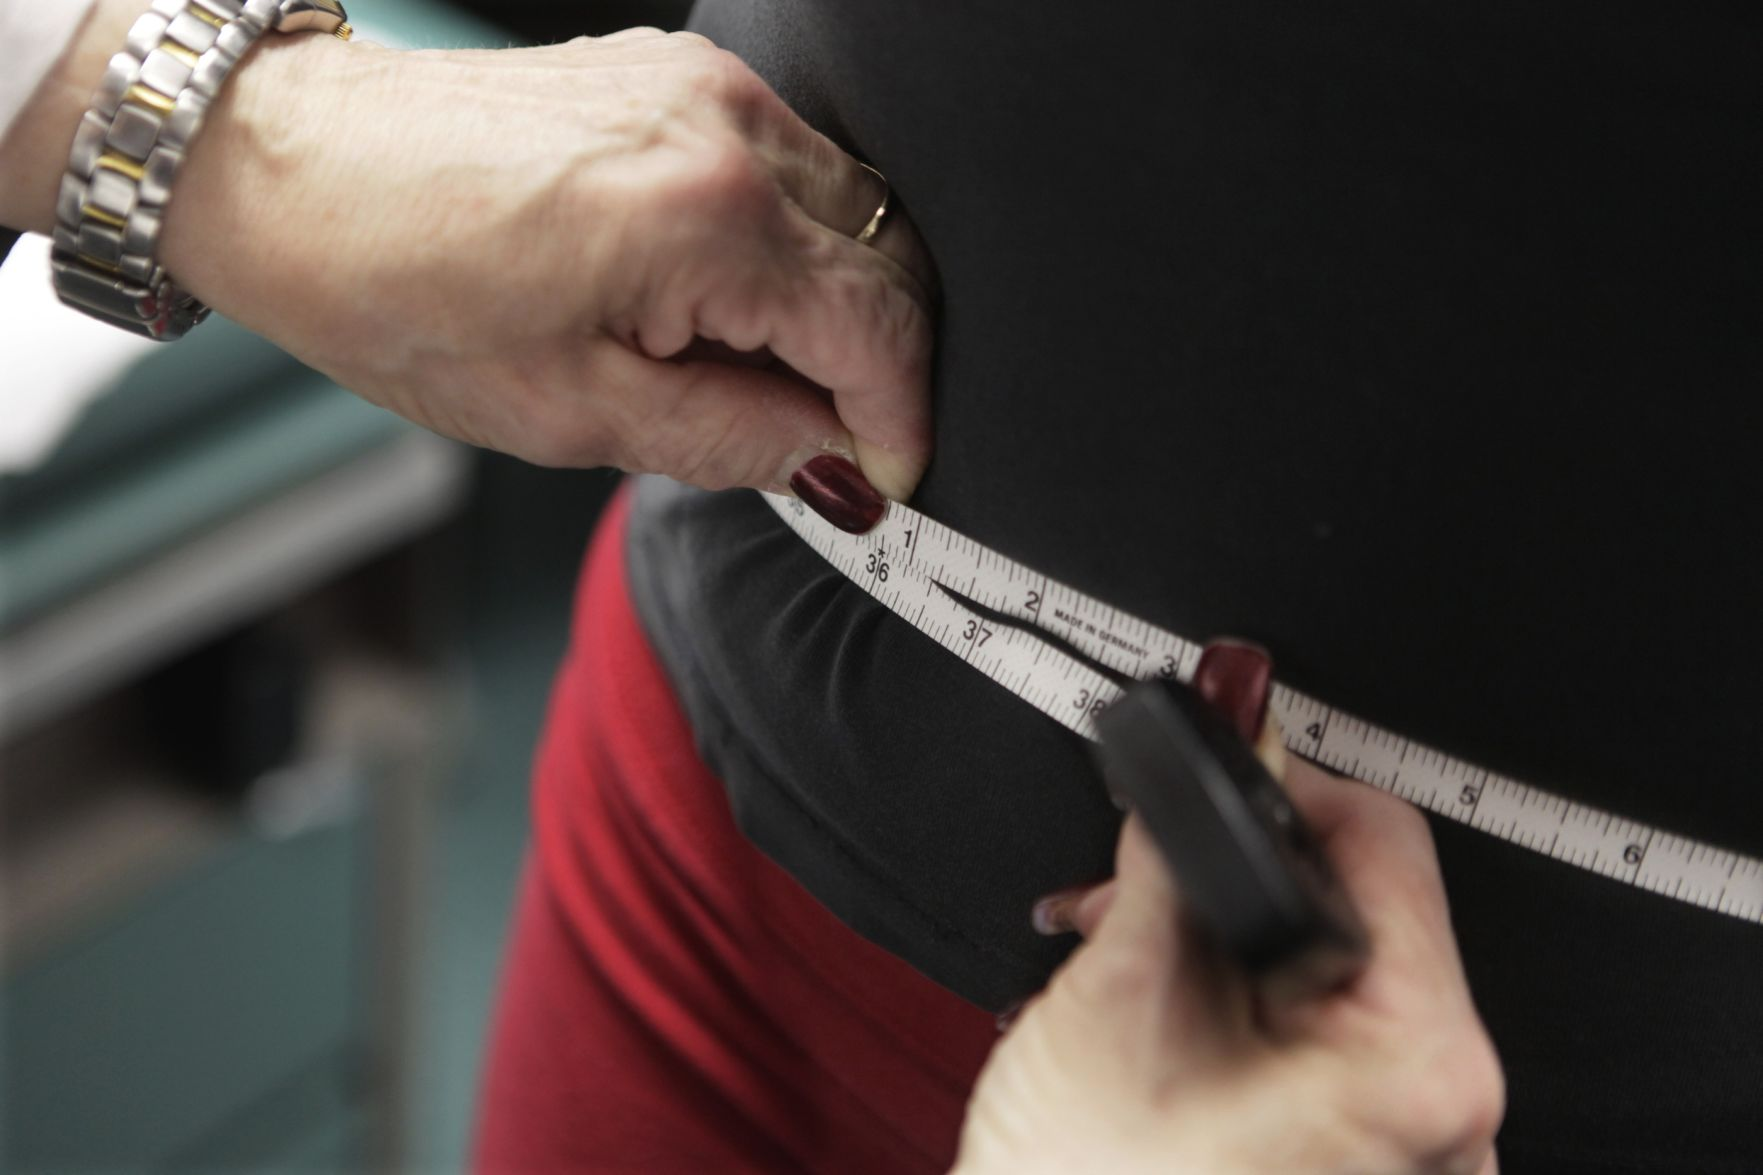 Wisconsin Ranks 23rd For Adult Obesity